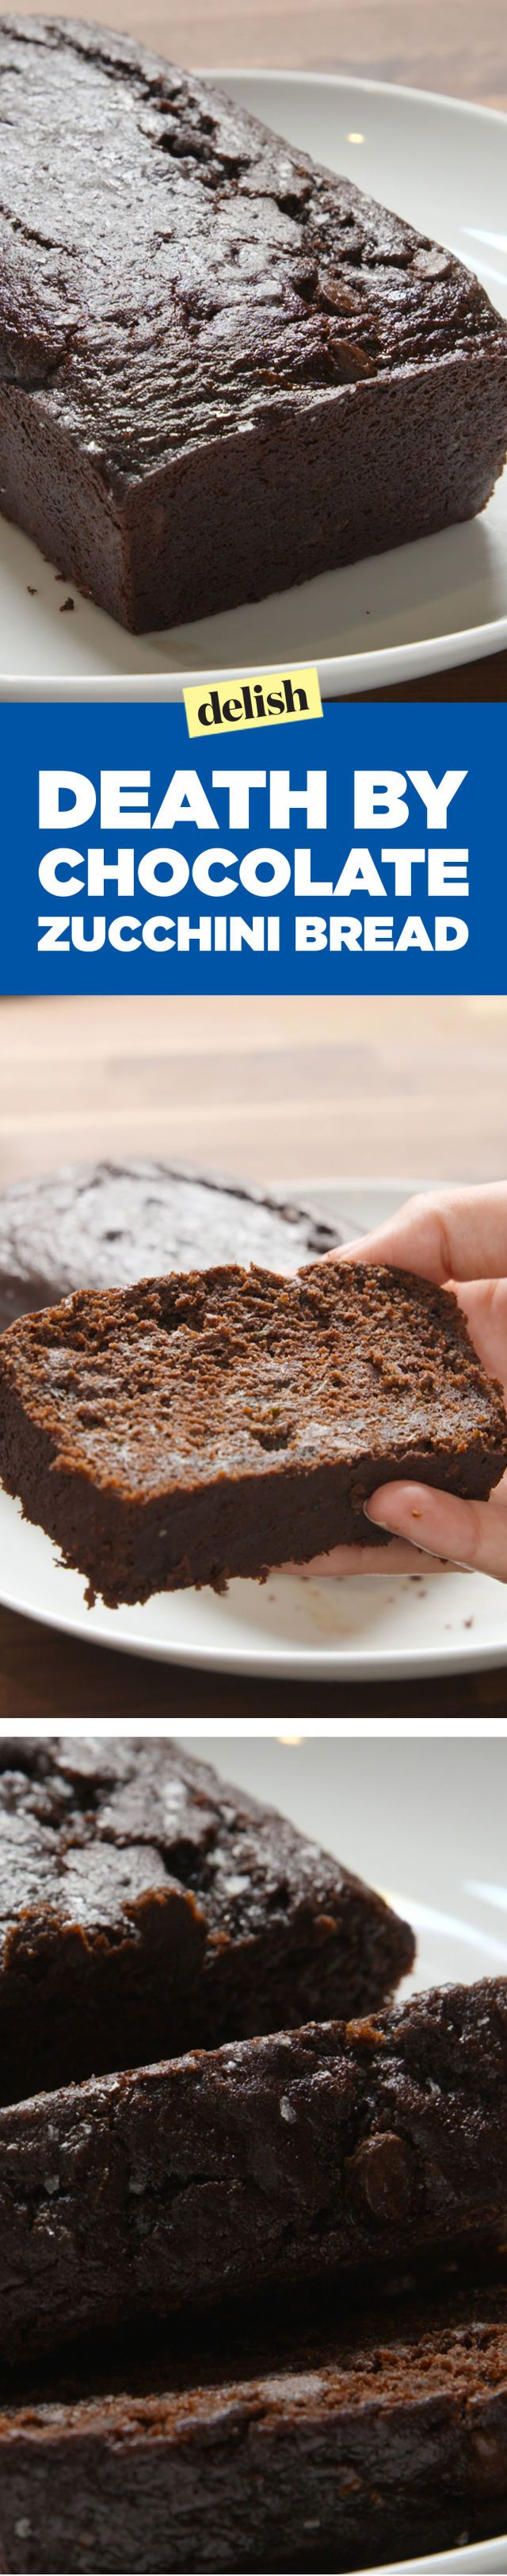 This Death by Chocolate Zucchini Bread Is The Healthiest Way To Get Your Extreme…